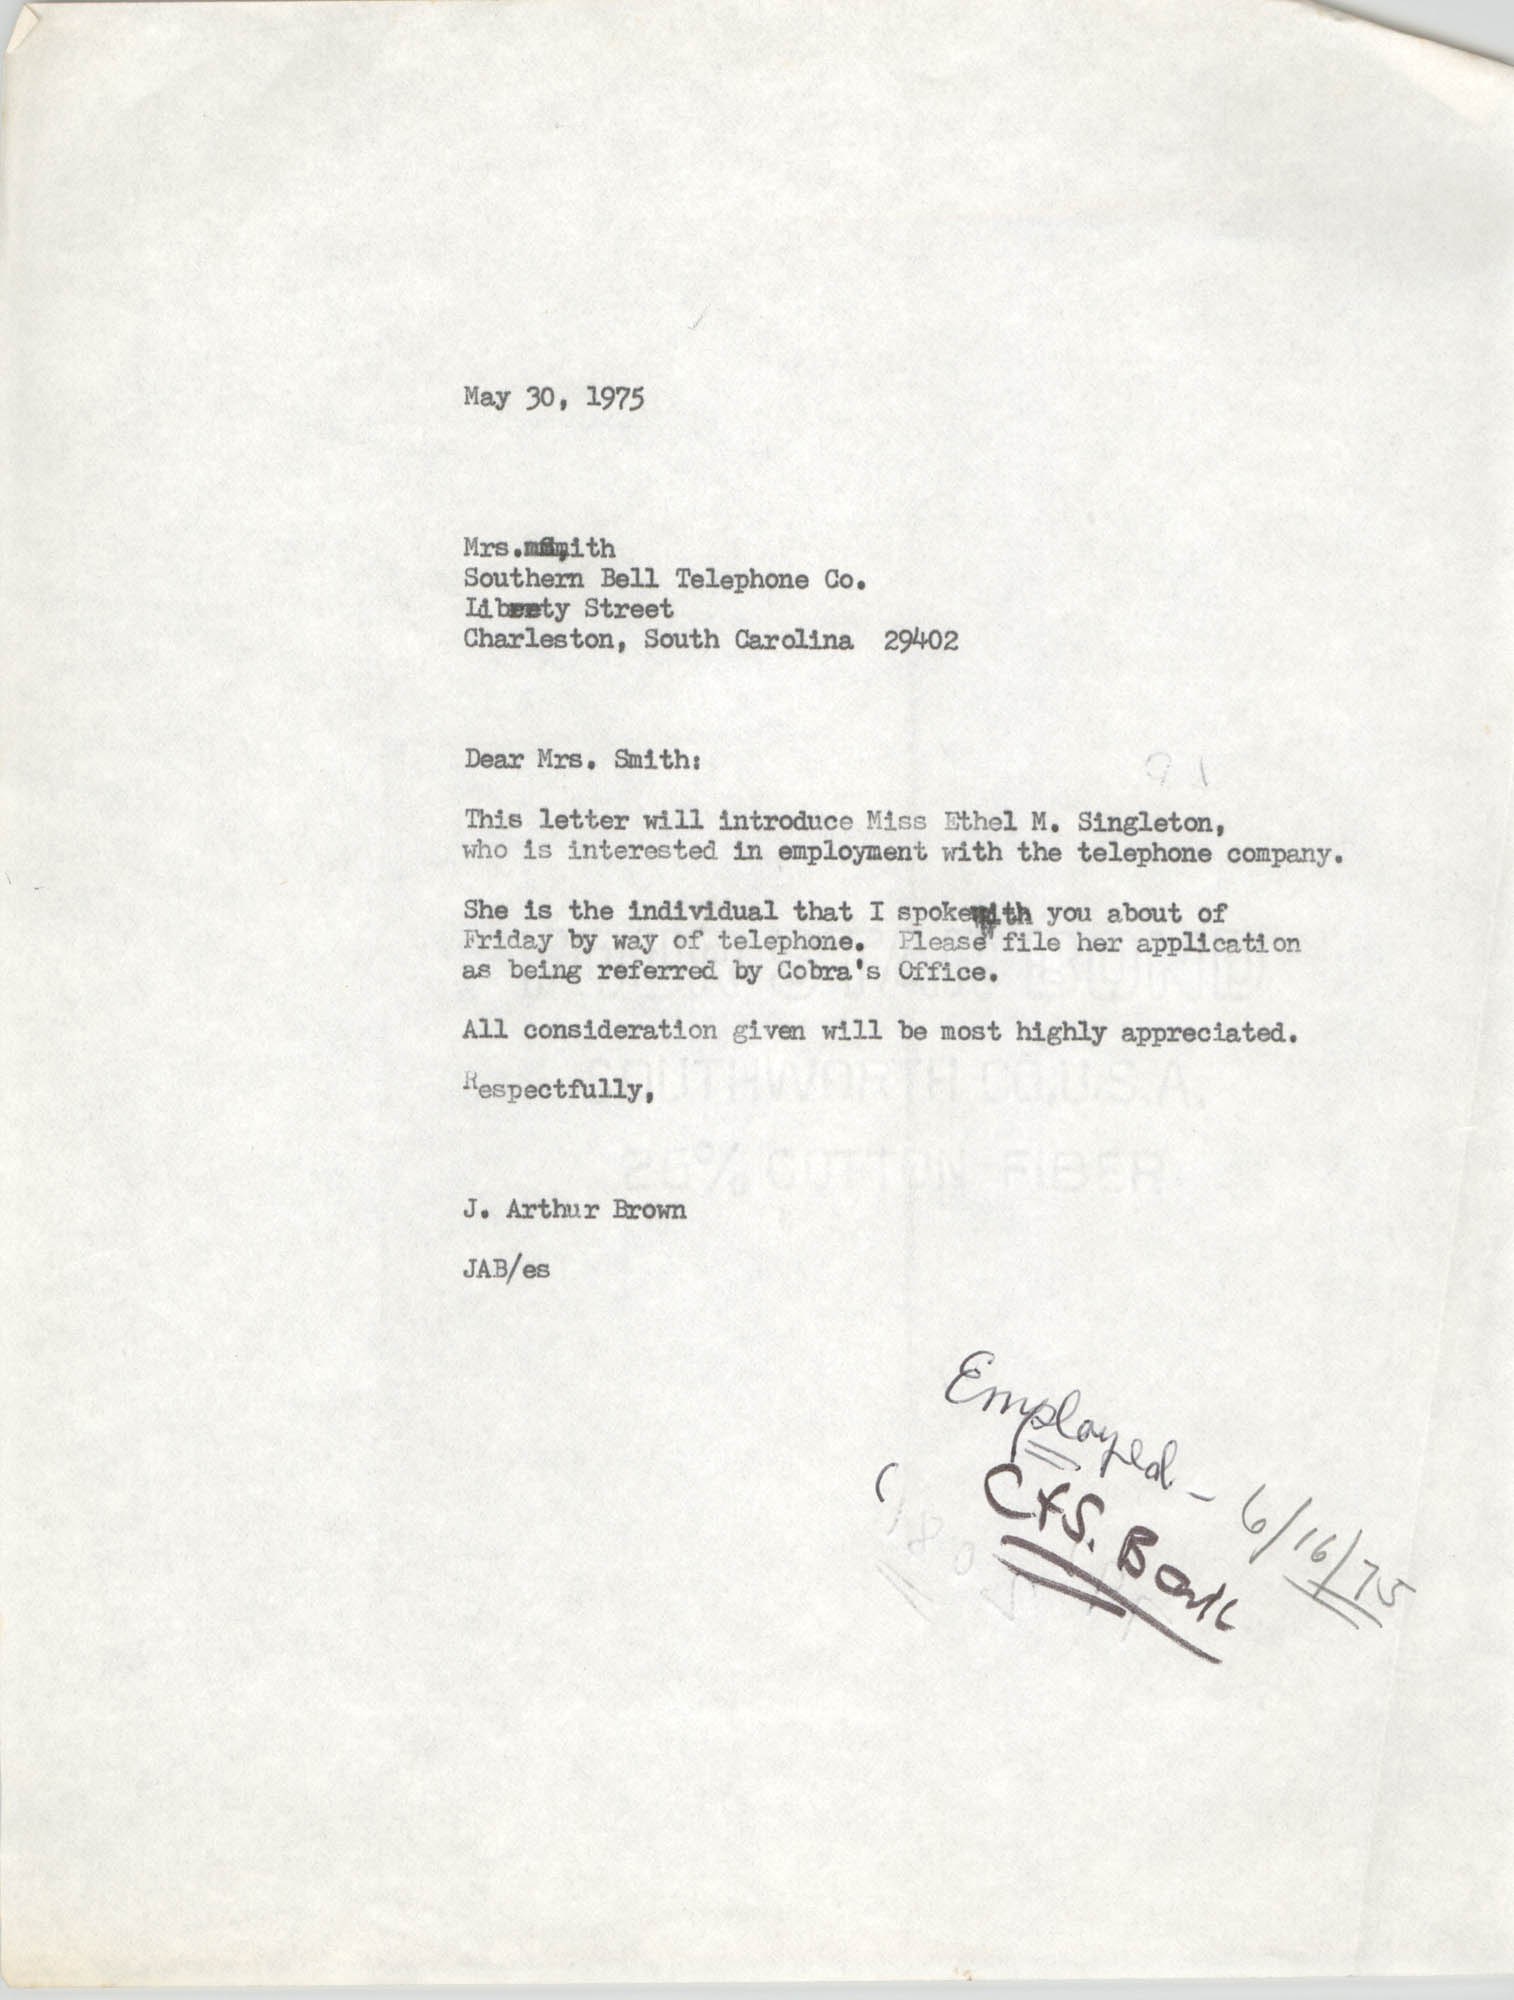 Letter from J. Arthur Brown, May 30, 1975